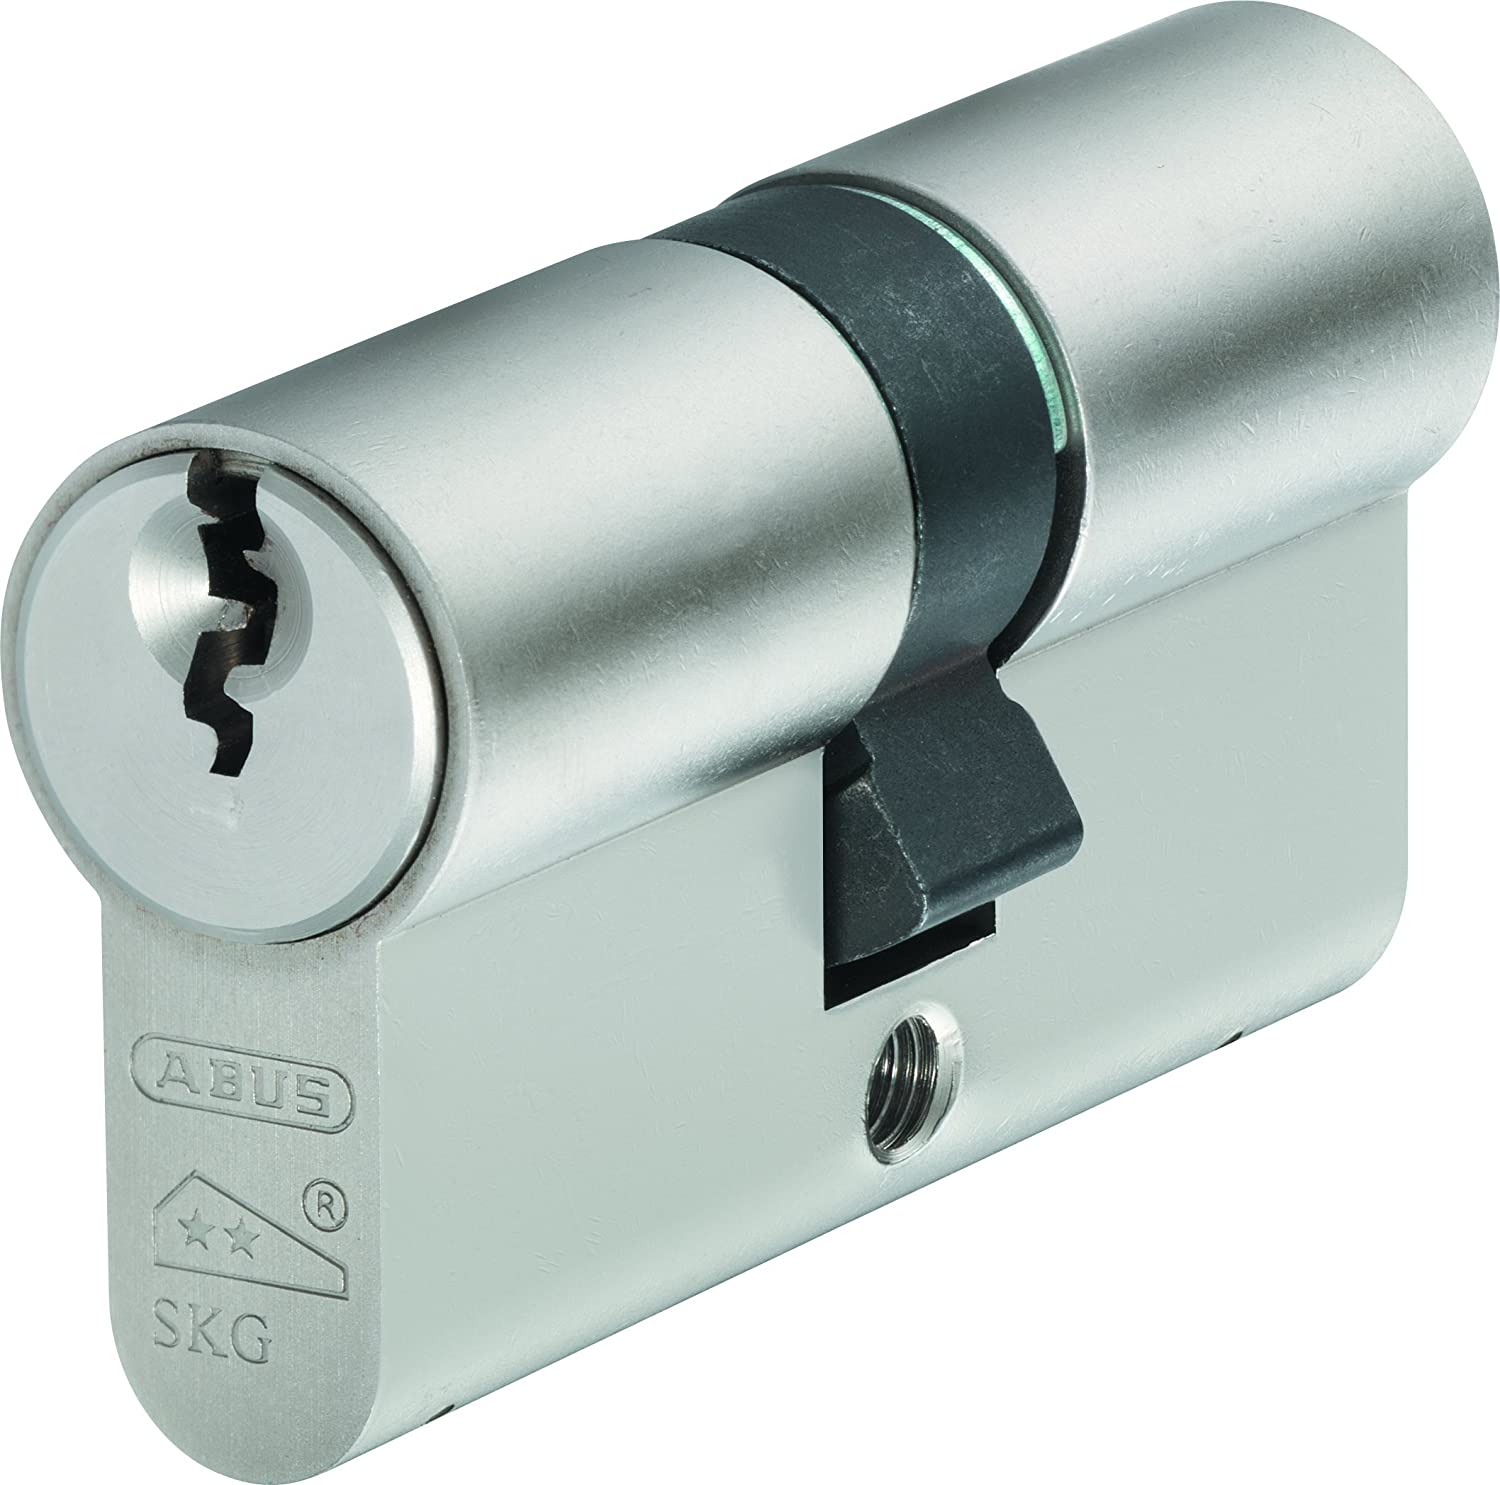 ABUS E60np Nickle Pearl Max 83% OFF 35 Double 50 100% quality warranty! Cylinder